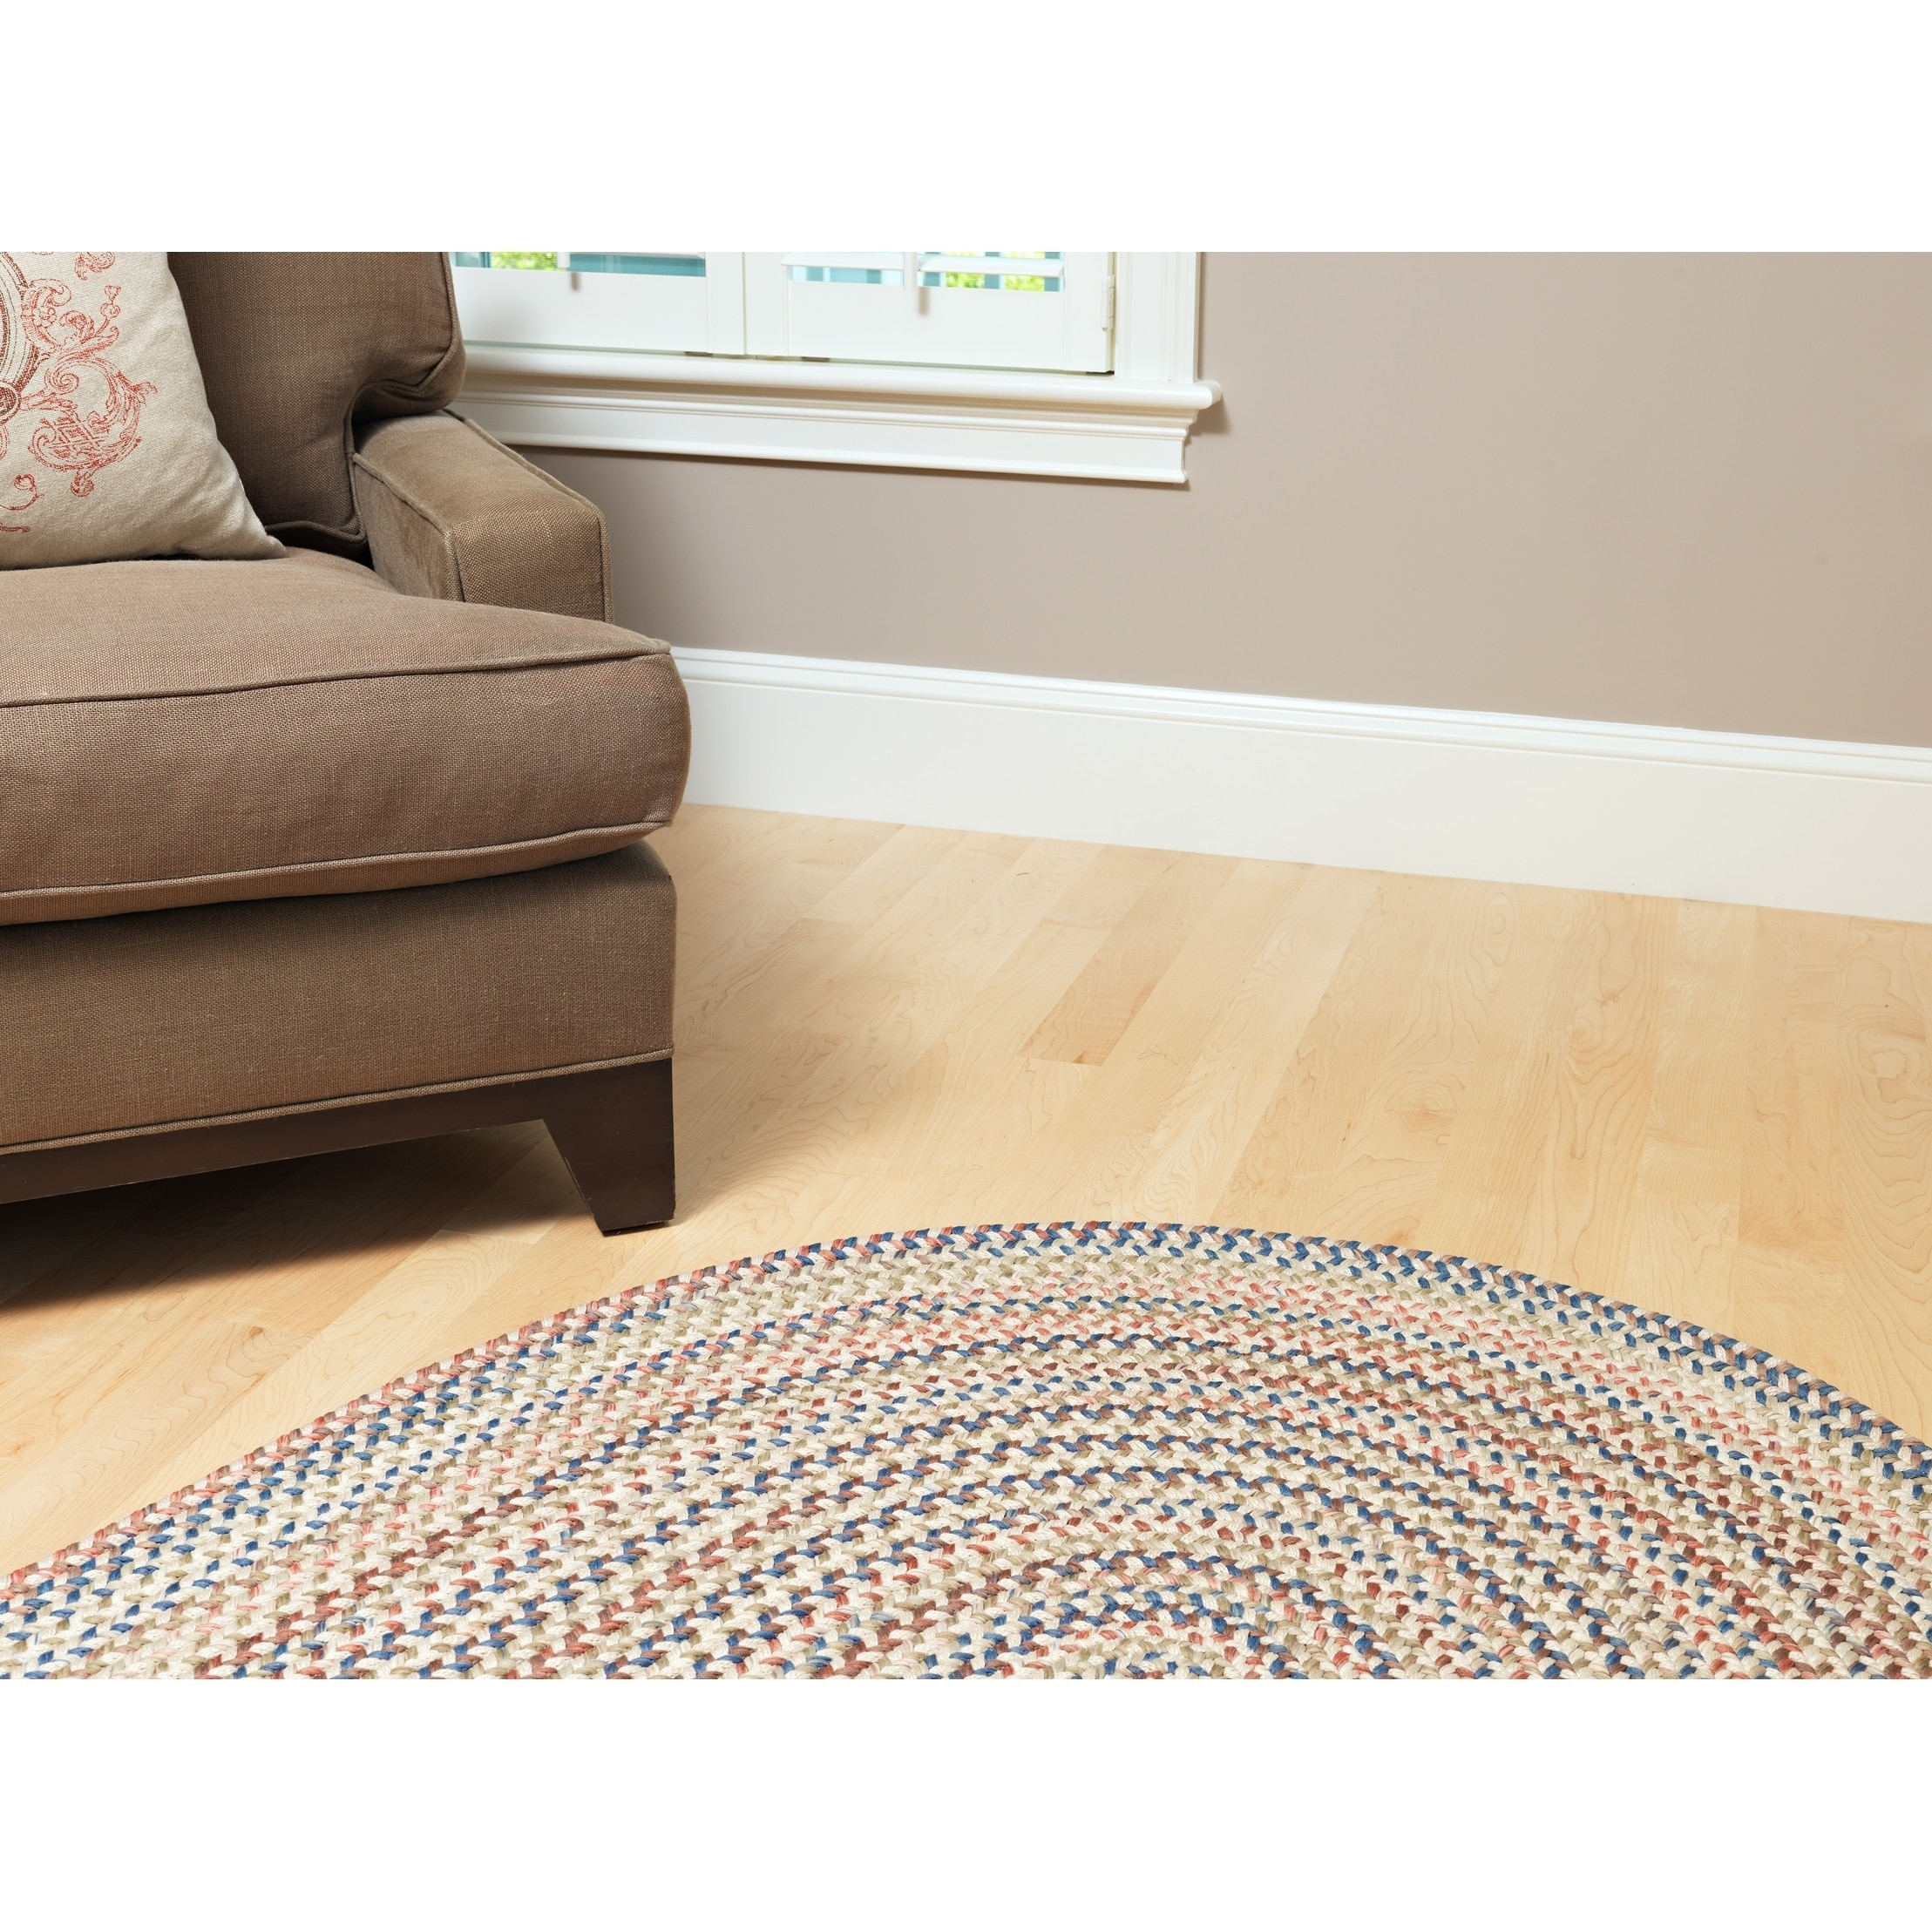 Shop Black Friday Deals On Copper Grove Coconino Braided Area Rug On Sale Overstock 20352008